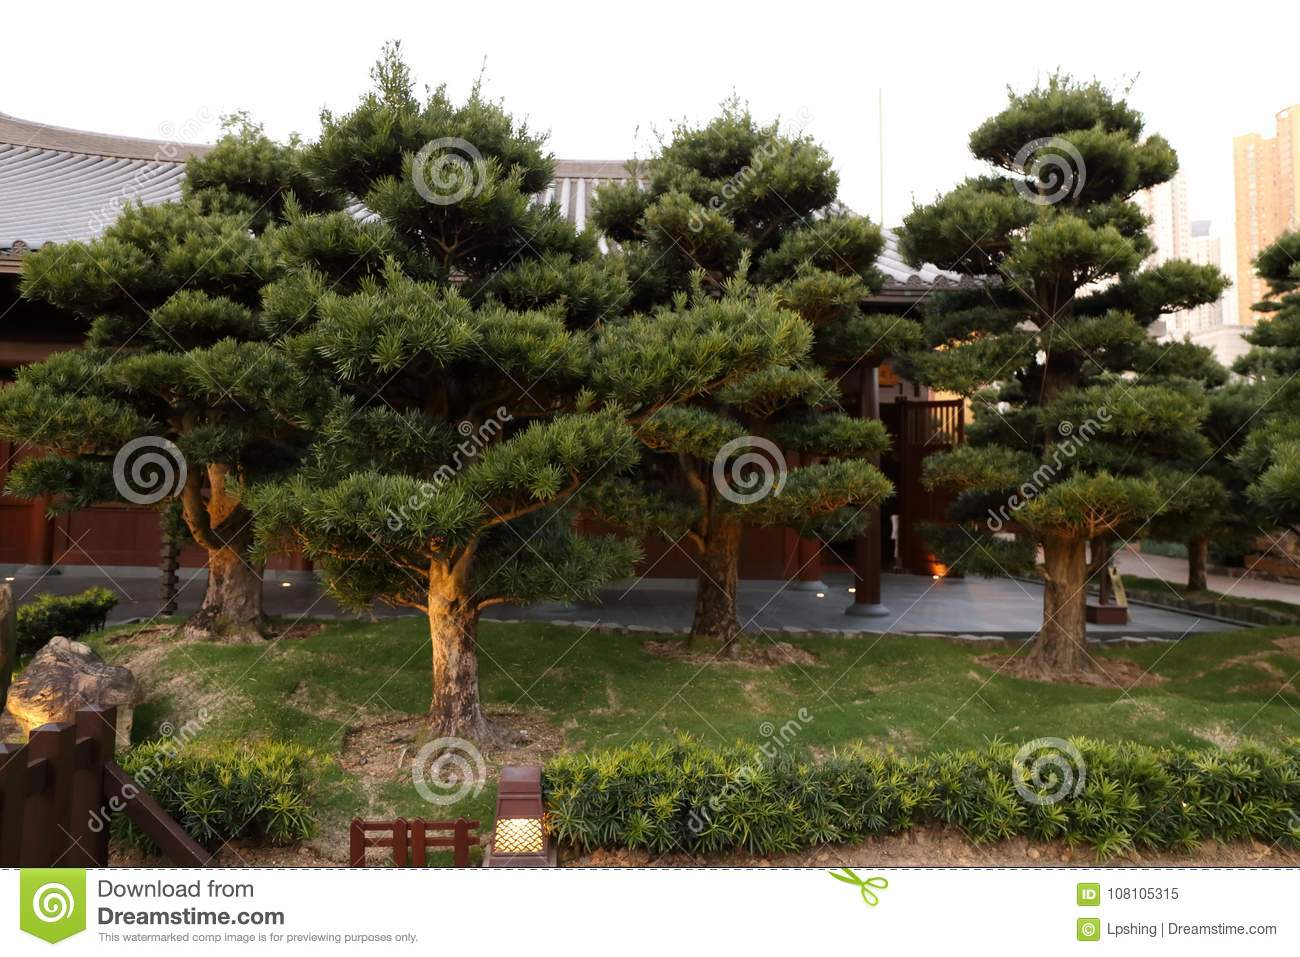 Download Chinese Style Garden Stock Image. Image Of Taken, Back   108105315